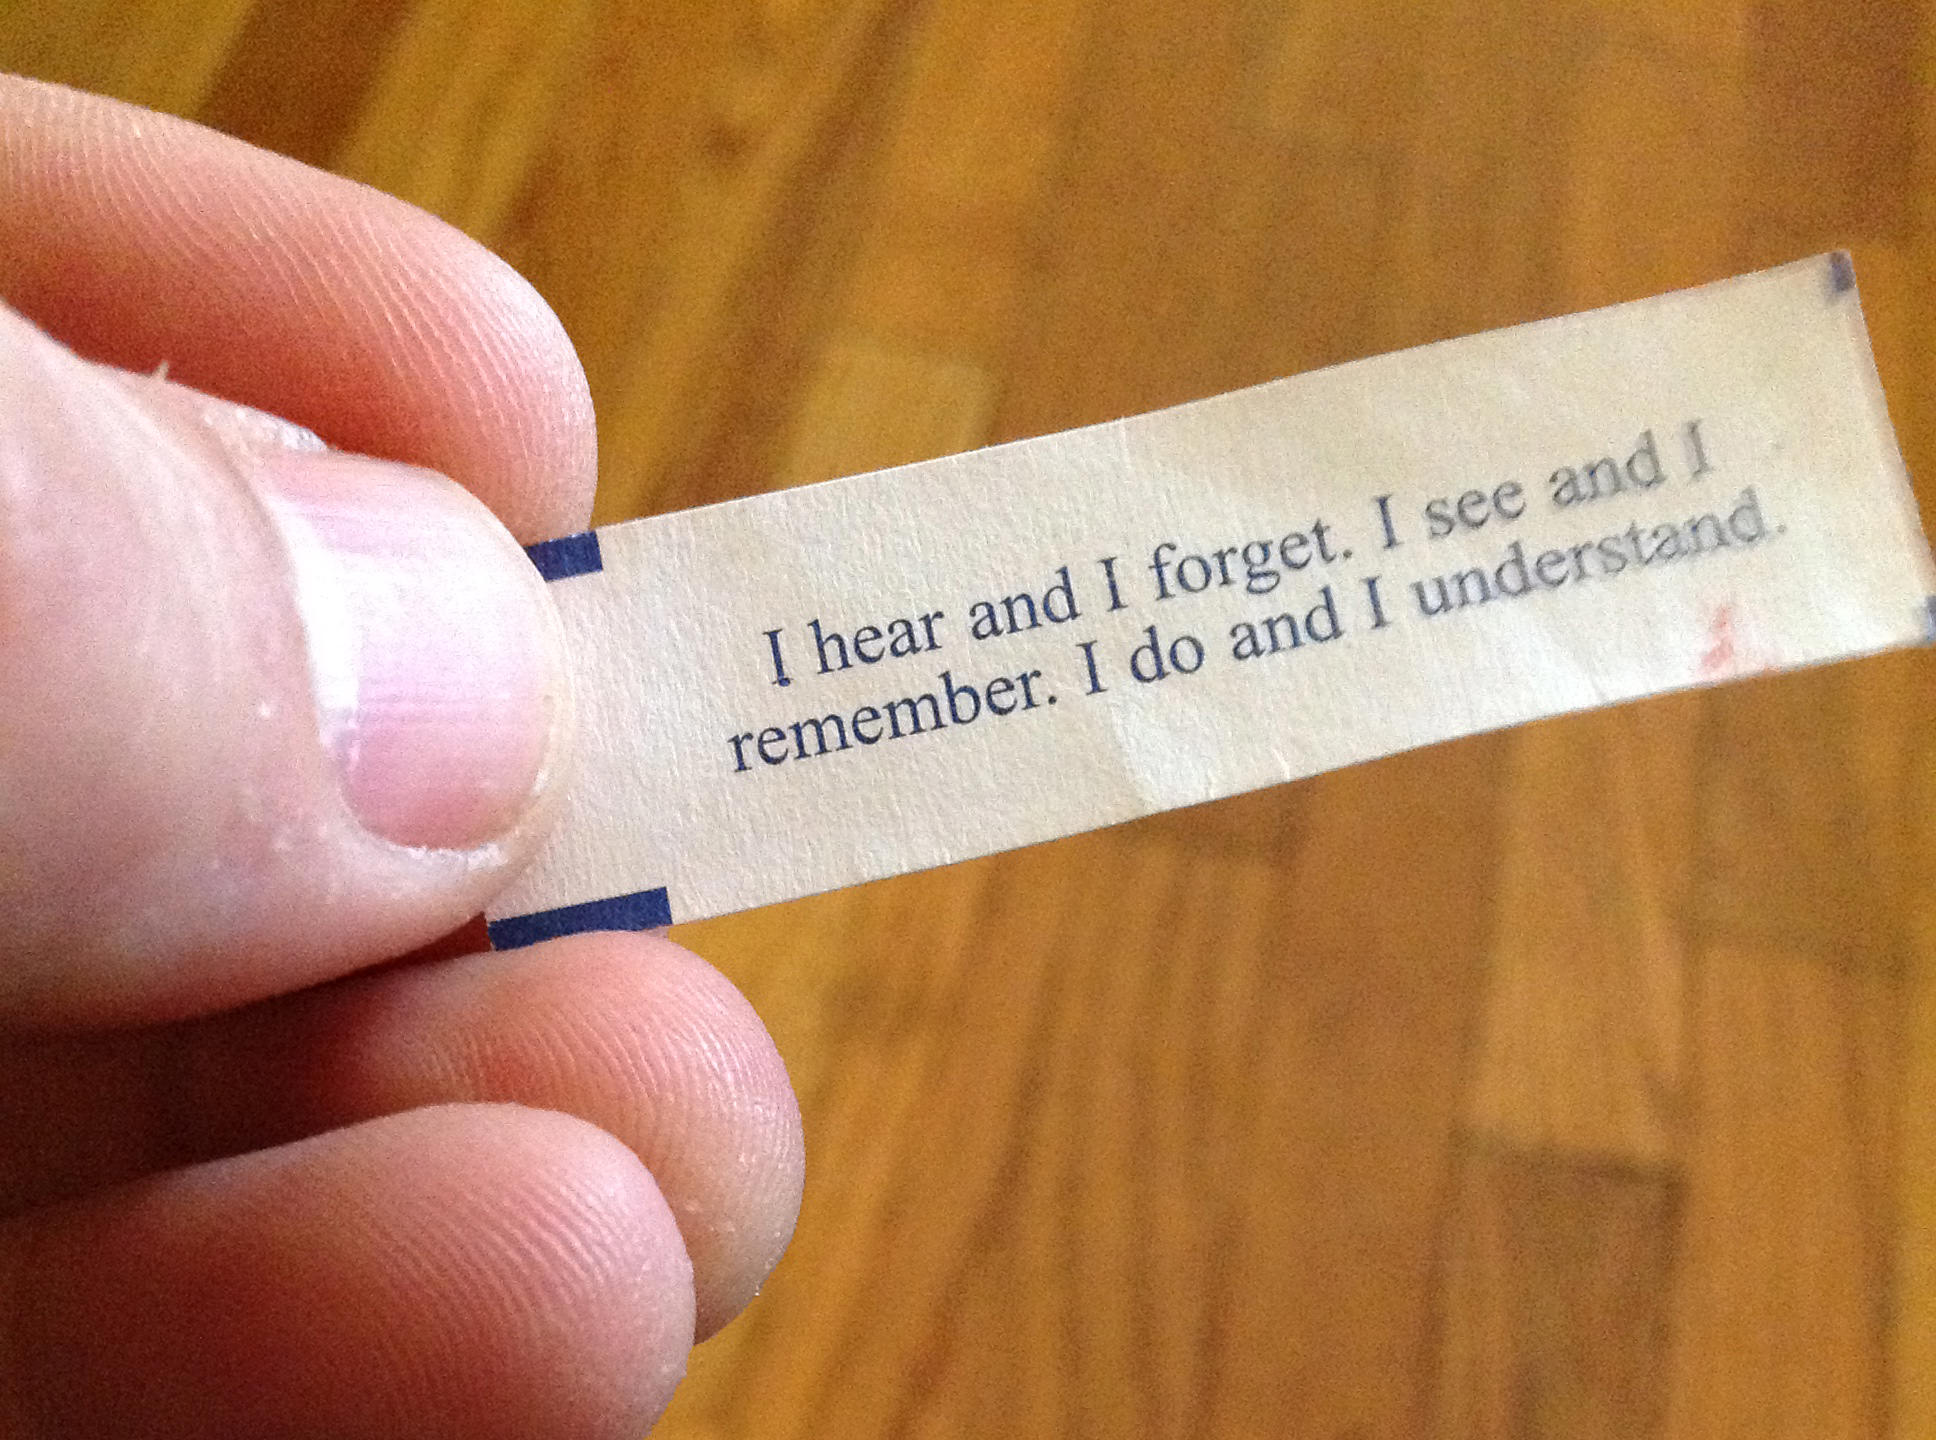 Do And Frases: 20 Inspirational Fortune Cookie Quotes On Life For